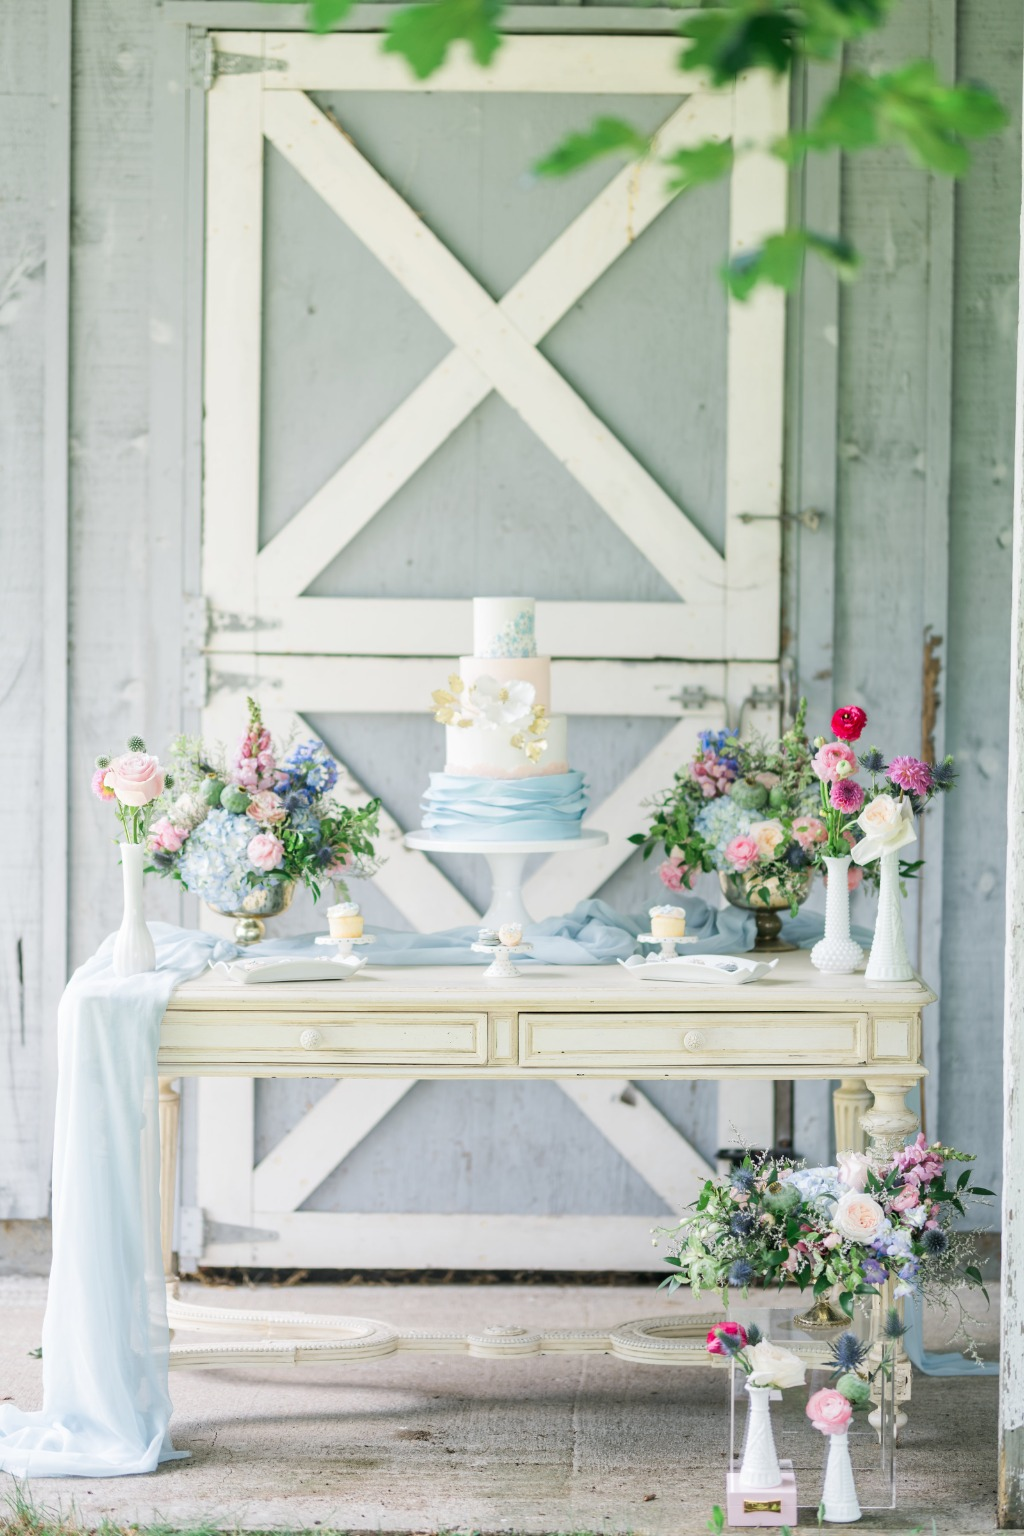 7 Modern Personal Touches to Add Style and Sophistication to a Traditional Wedding